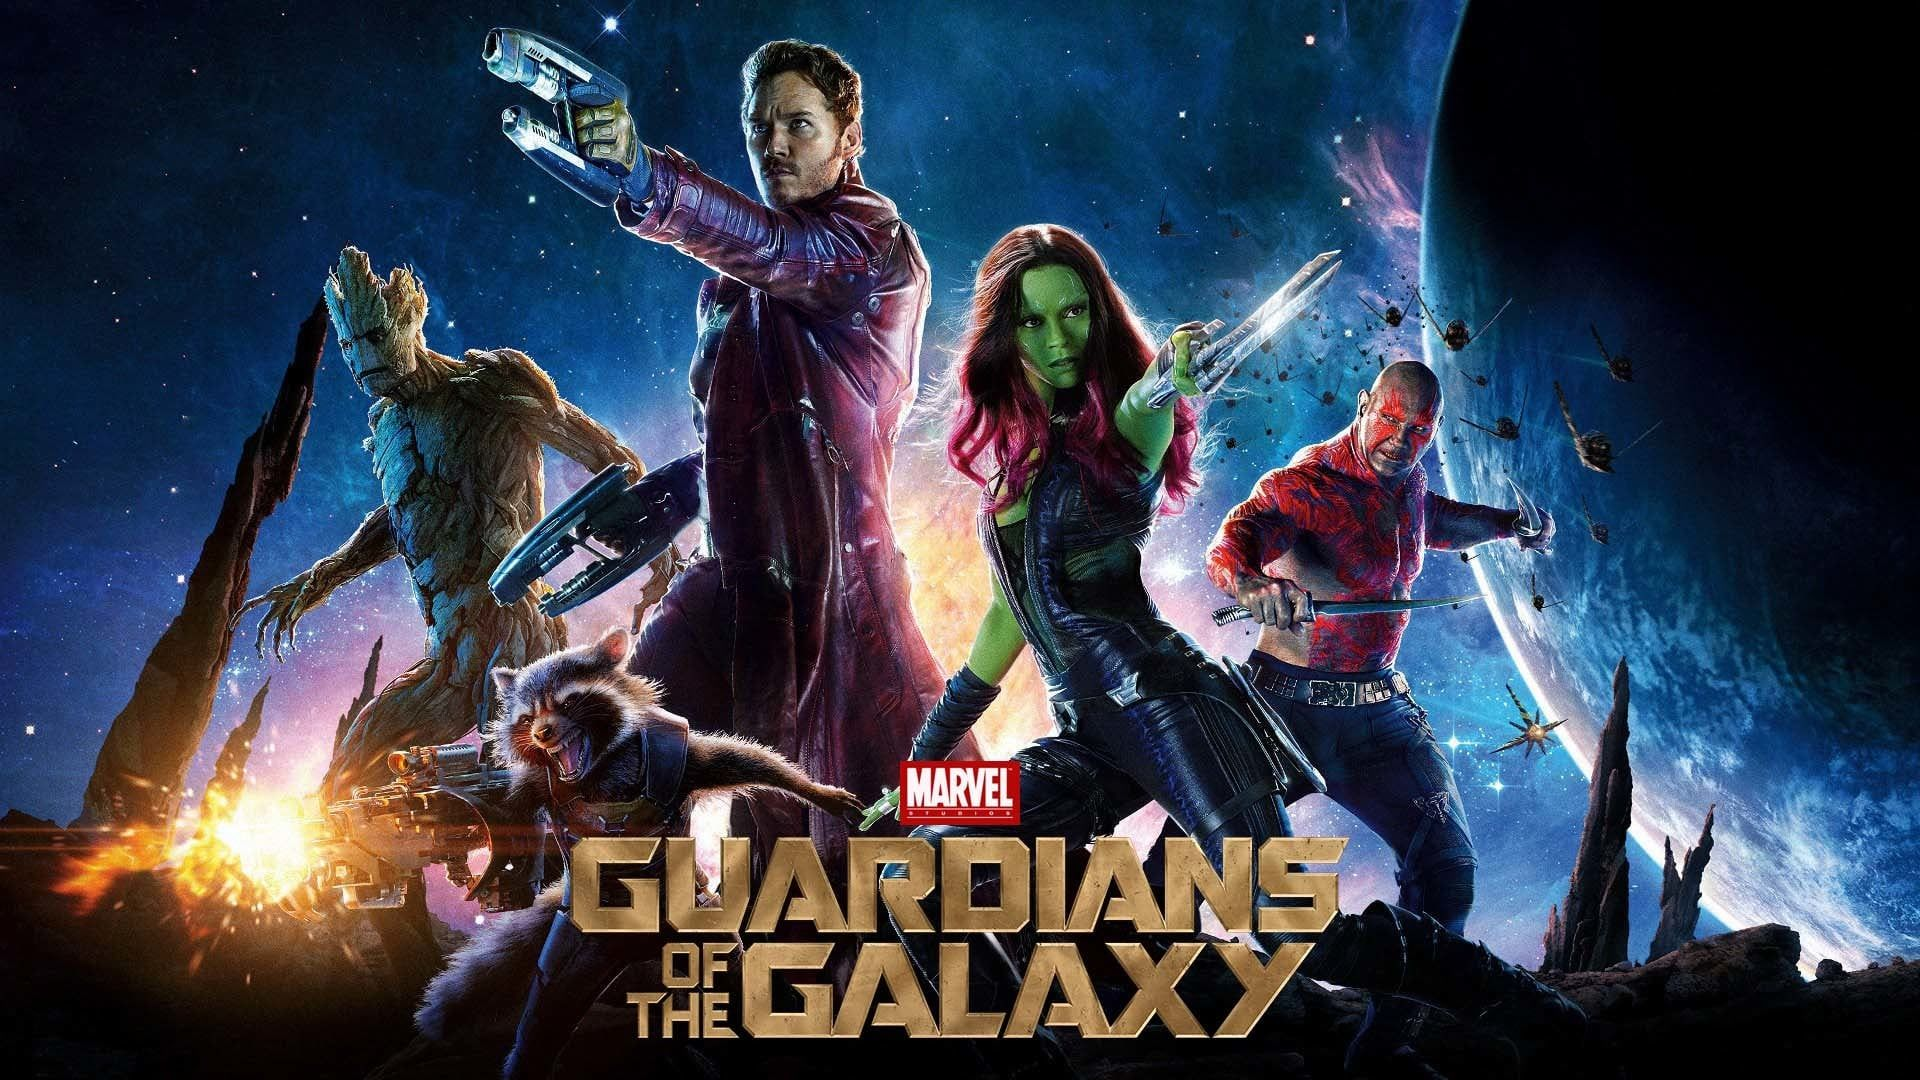 Sehen Guardians Of The Galaxy 2014 Ganzer Film Deutsch Komplett Kino Guardians Of The Galaxy 2014complete Film Deutsch Guardians Of The Galaxy Online Kostenlos